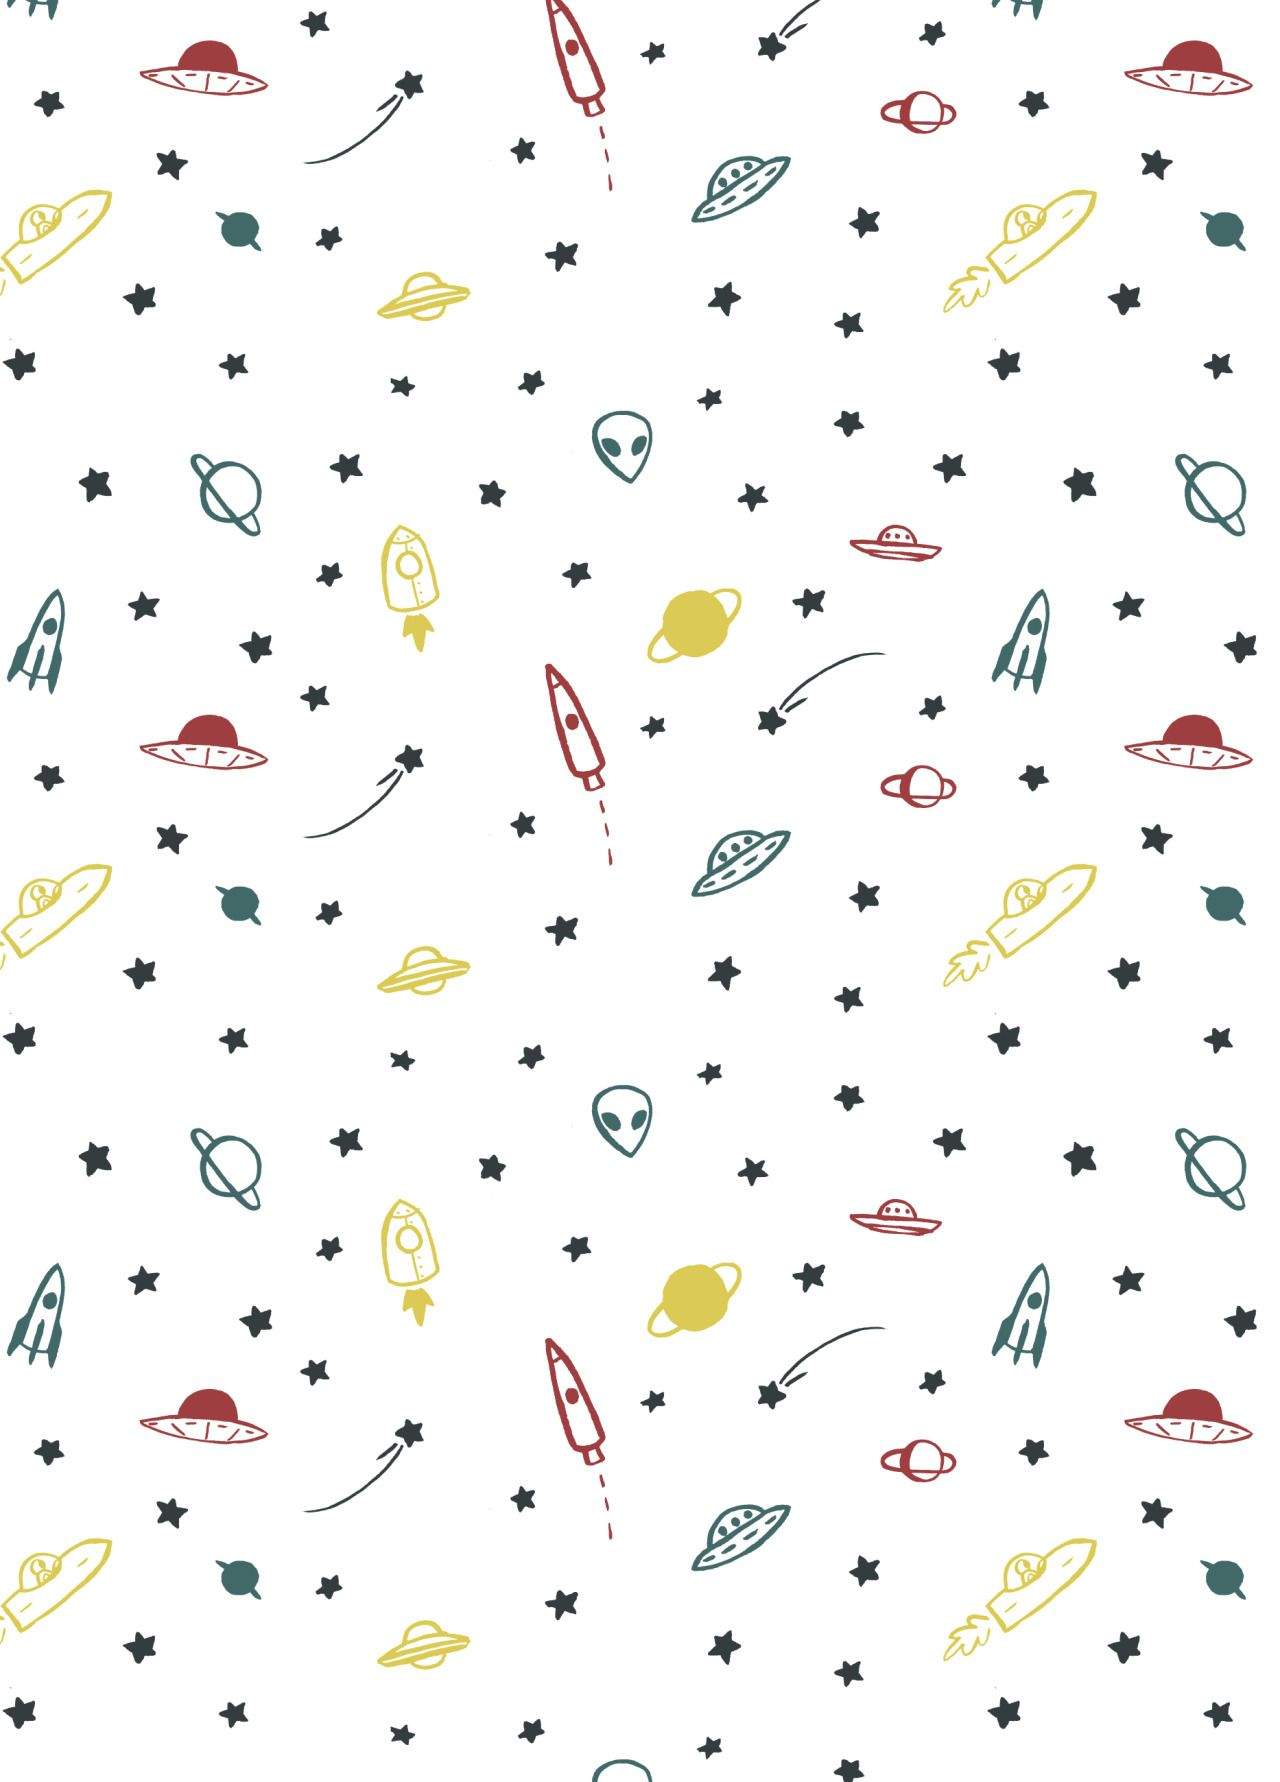 I designed this pattern for the end papers of my collective's zine! You can buy one here if you'd like! ;)